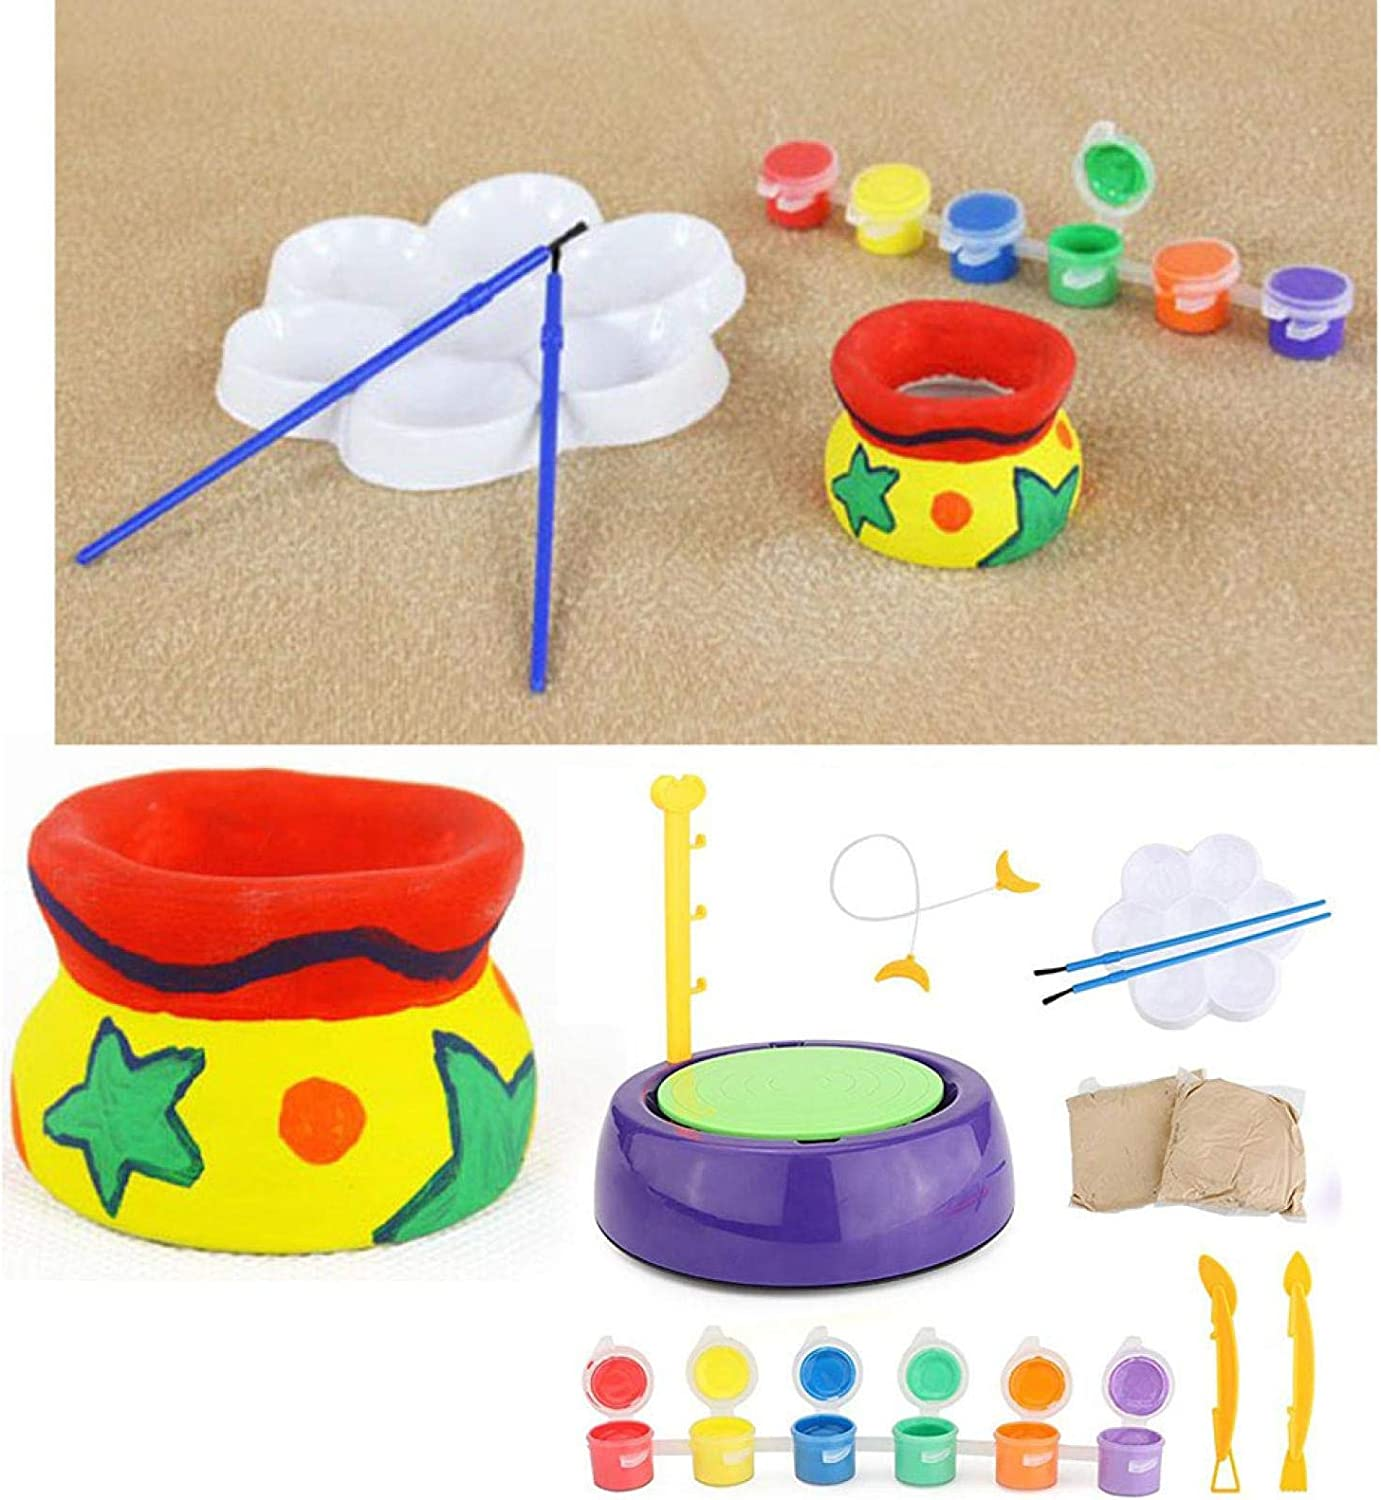 Ceramic Machine with Clay for Beginners Owill Pottery Wheel for Kids DIY Educational Toy Christmas Birthday Gift for Boys Girls Pottery Studio Studio Clay Craft Kit Pottery Wheel Kit